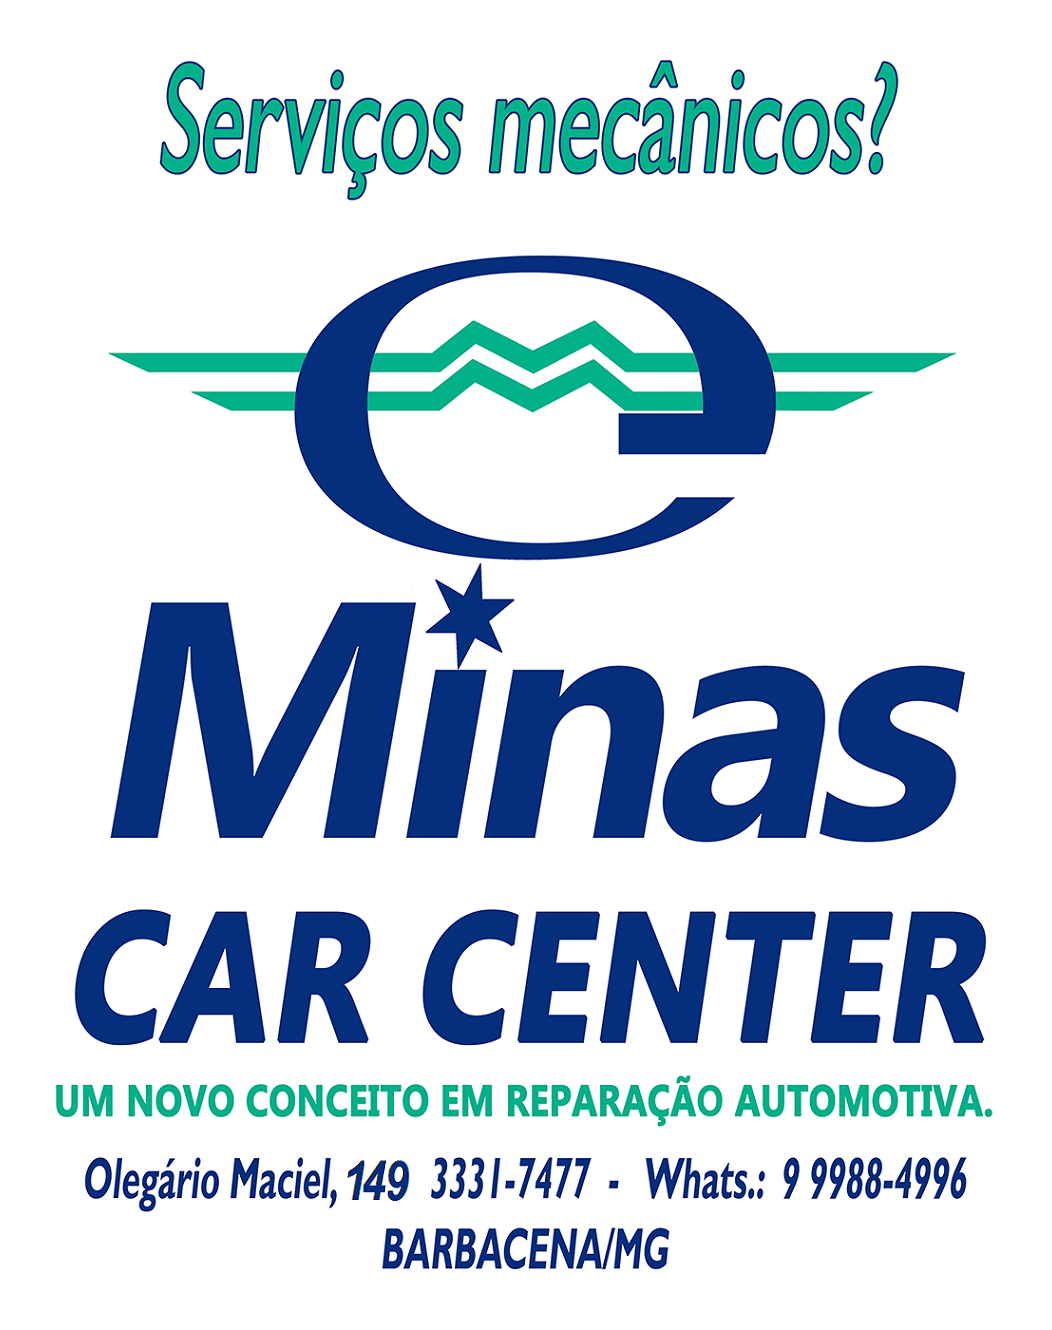 001 MinasCar Center